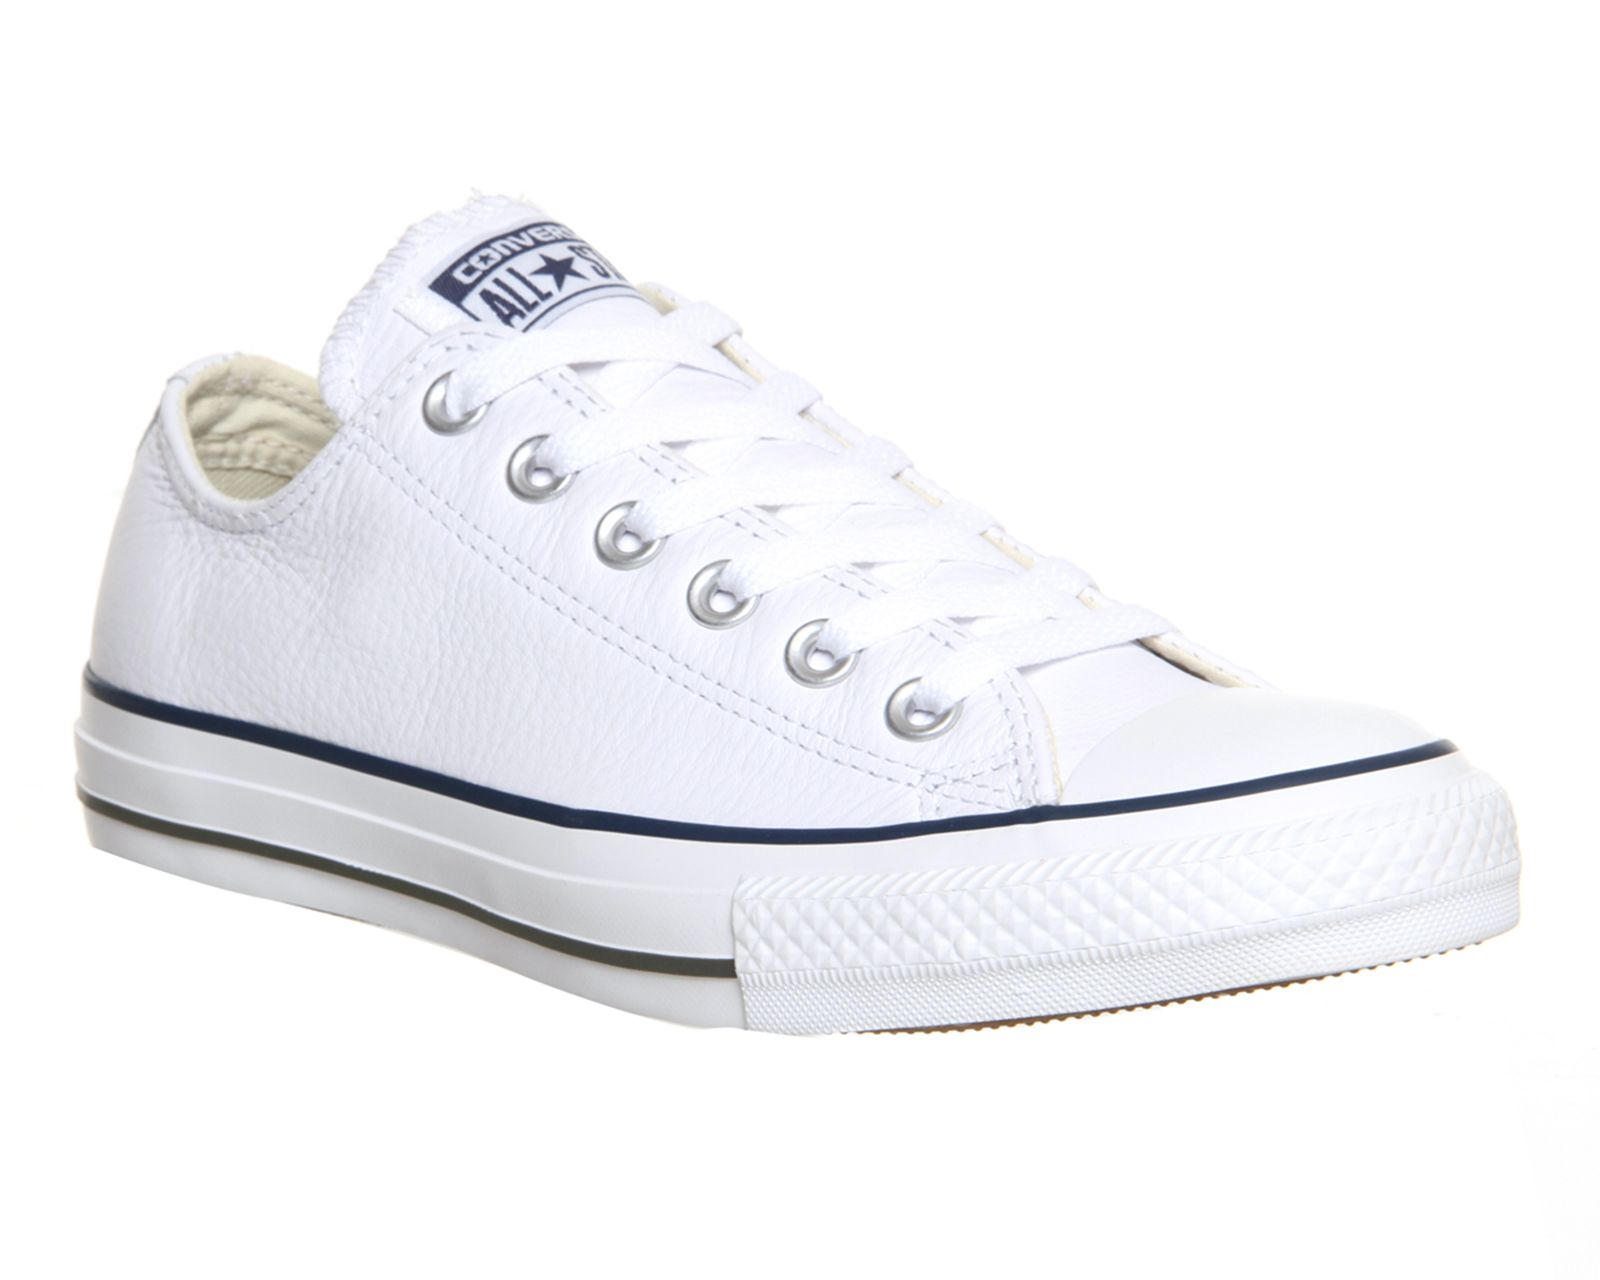 Wa06005103 united kingdom men's loungin ox men converse sale white converse black sale sale Outlet